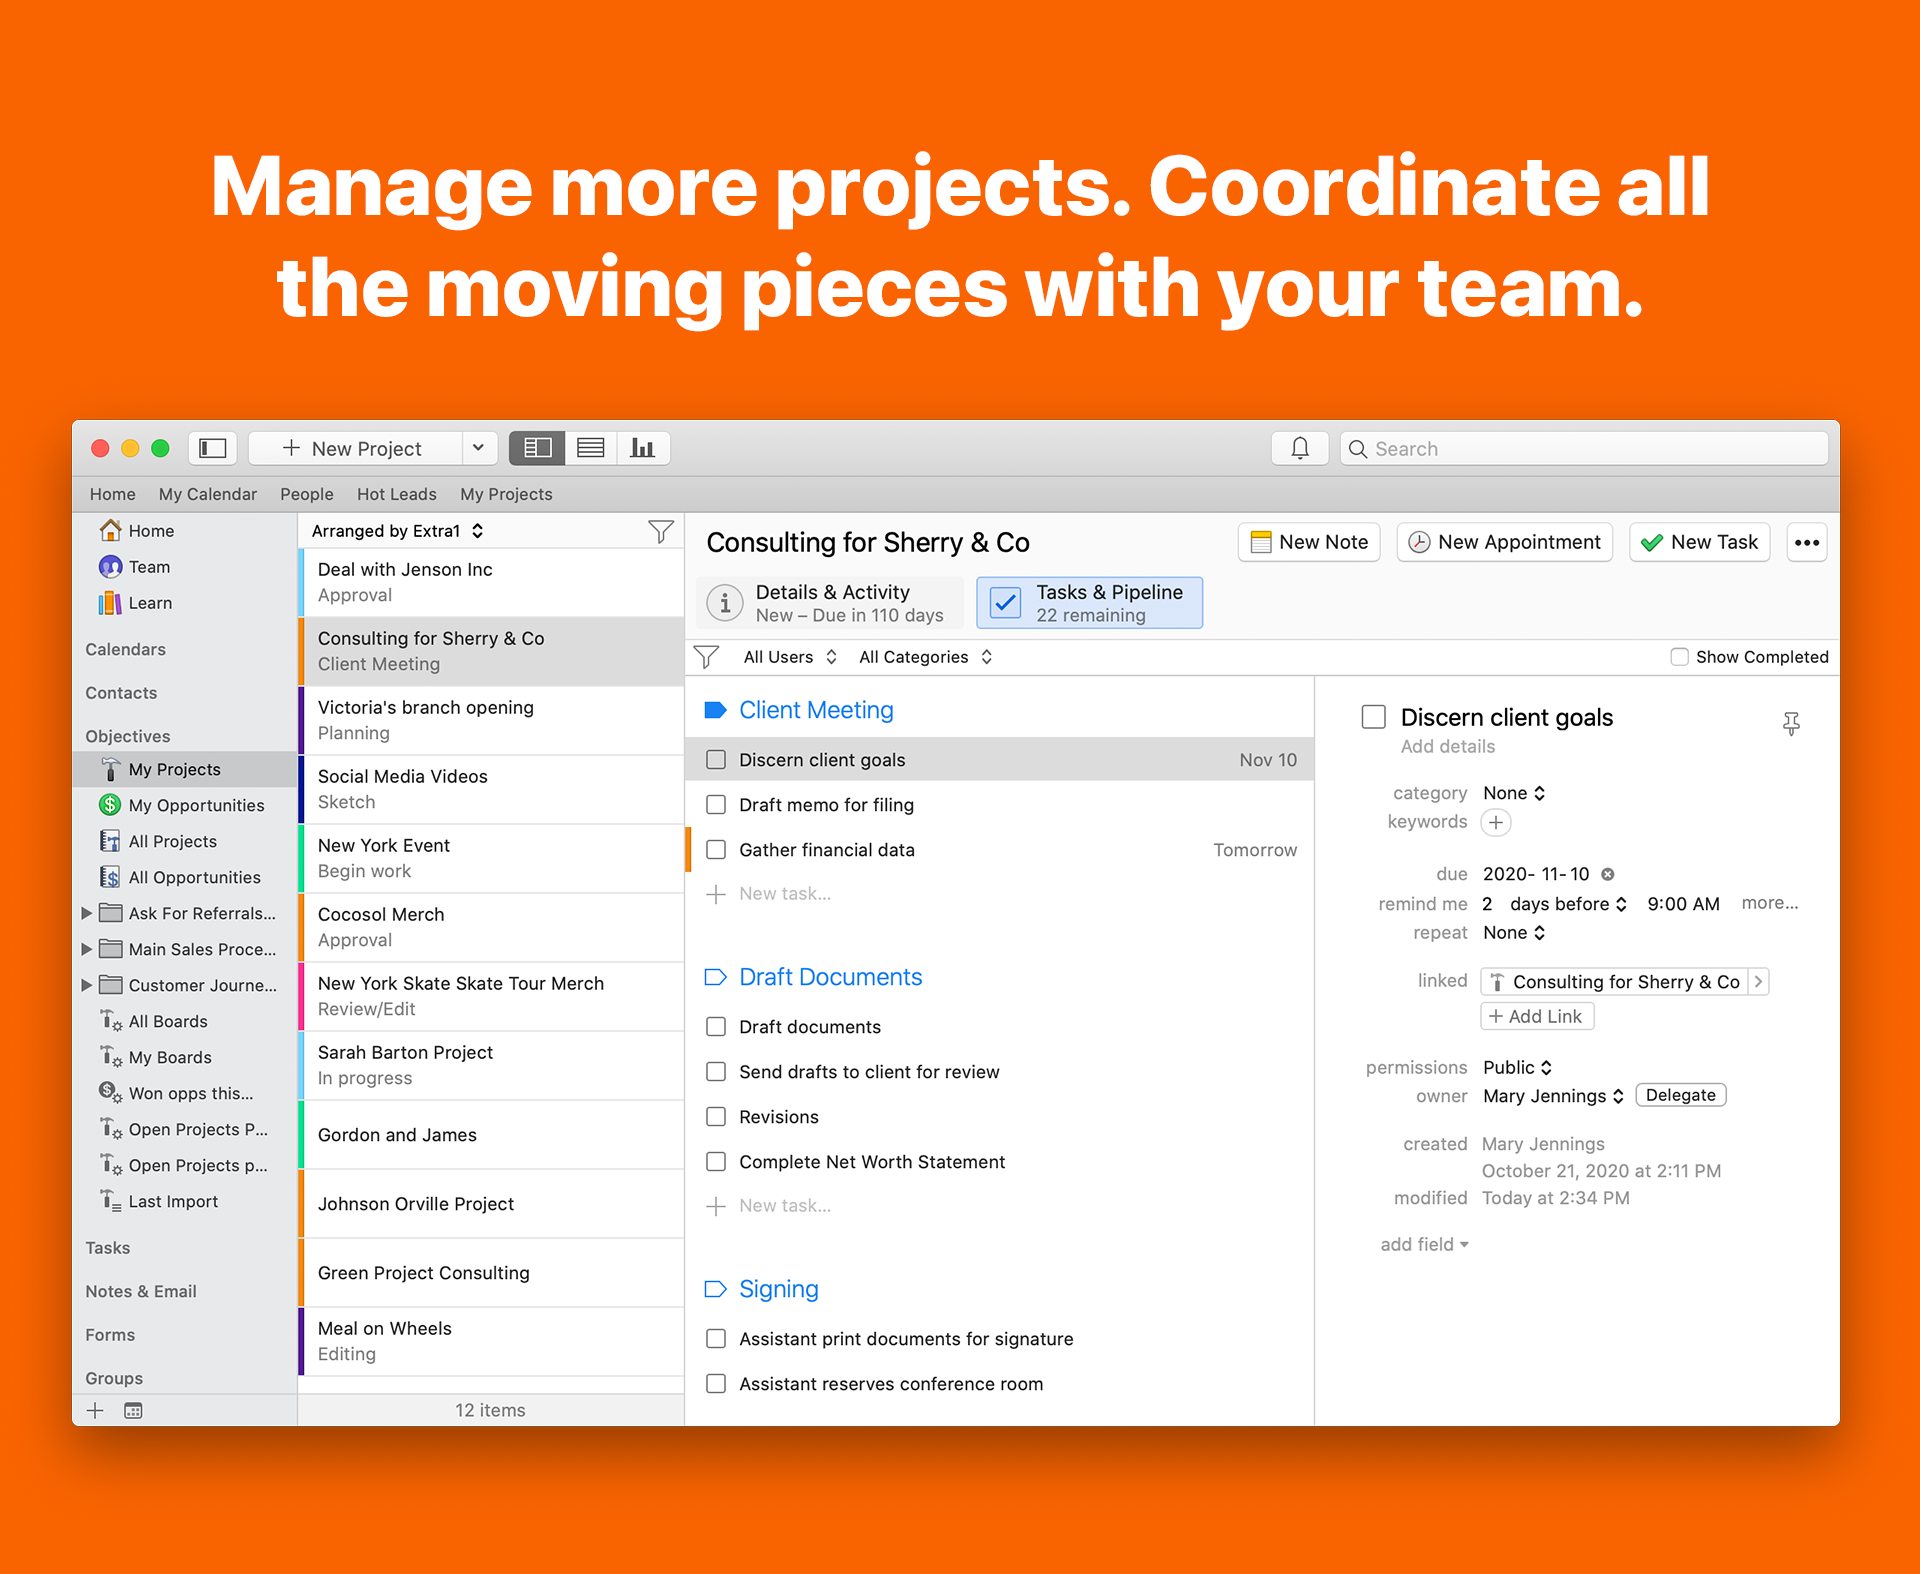 Manage projects with your team. Know what's been done and what needs to be done next.